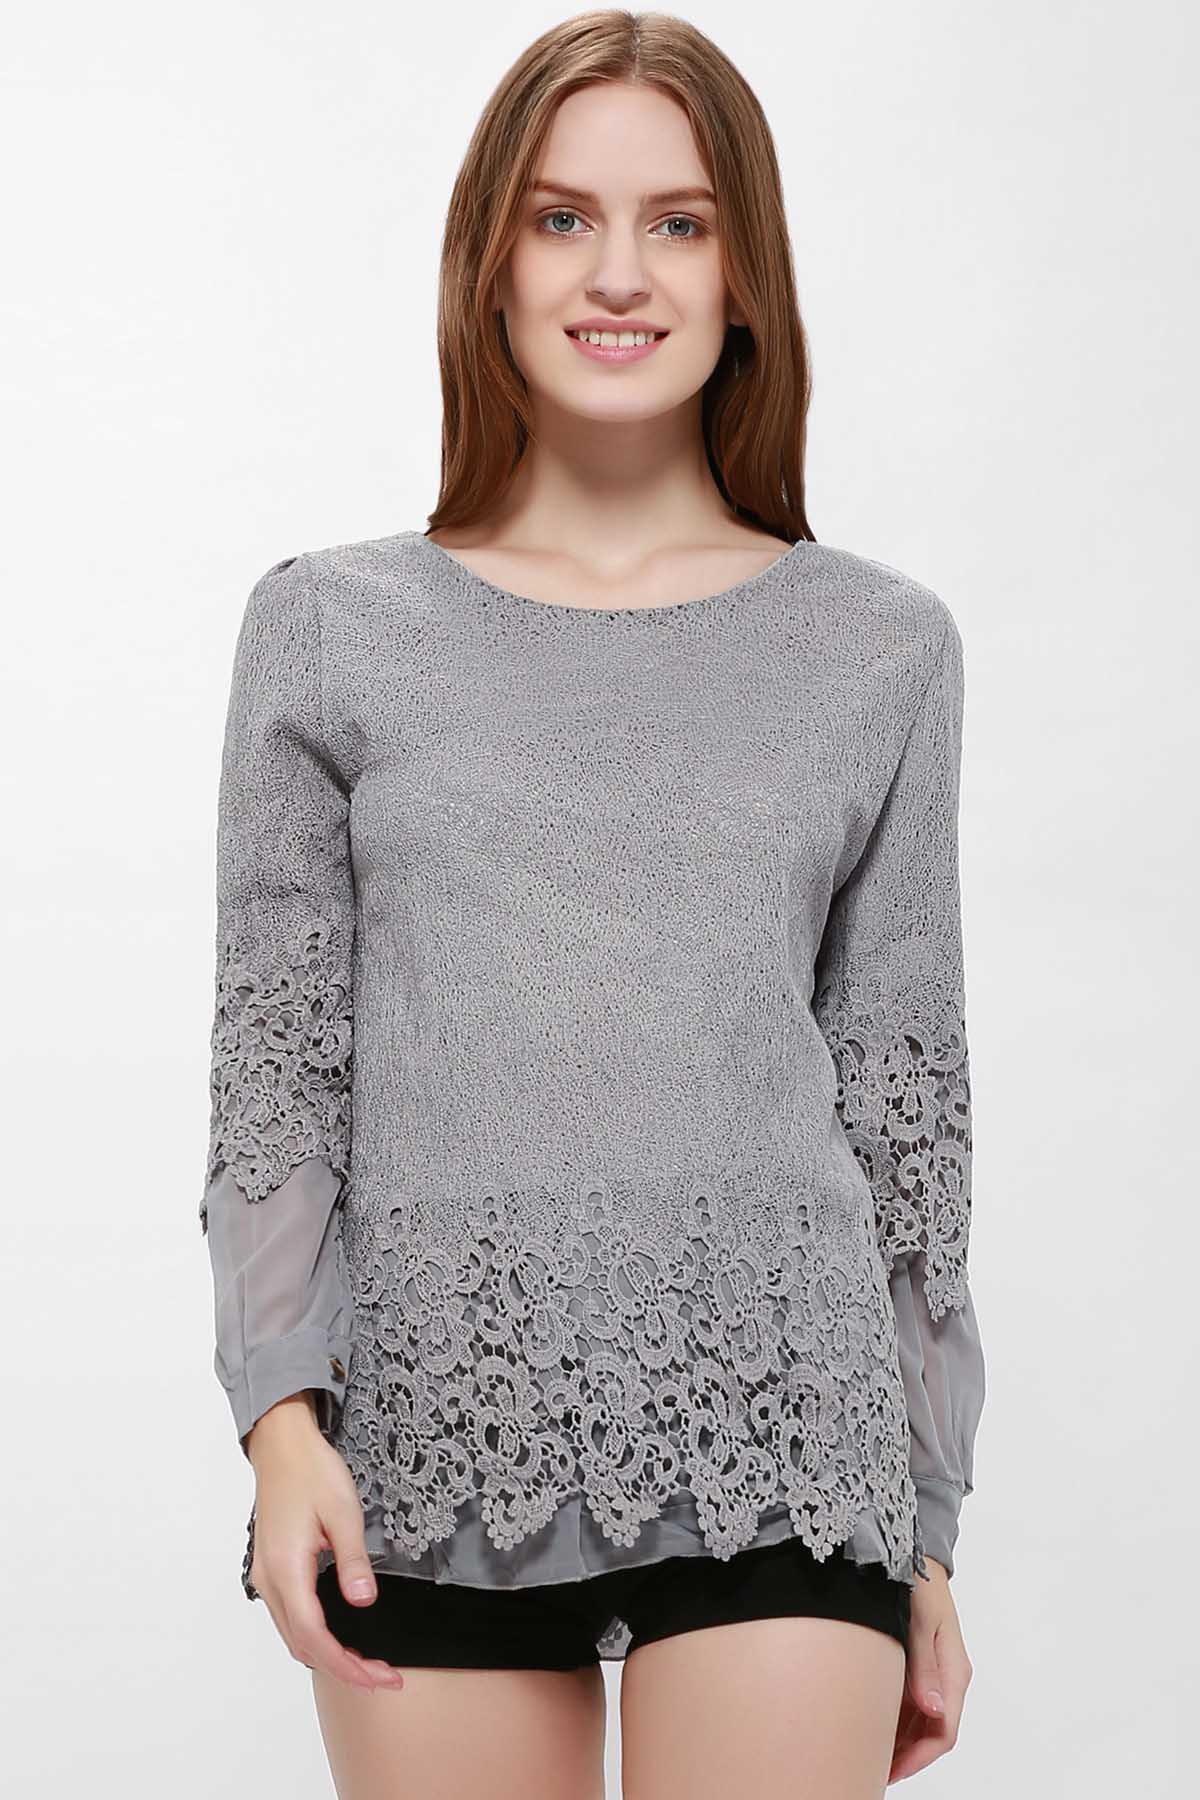 Long Sleeves Lace Panel Top - GRAY L